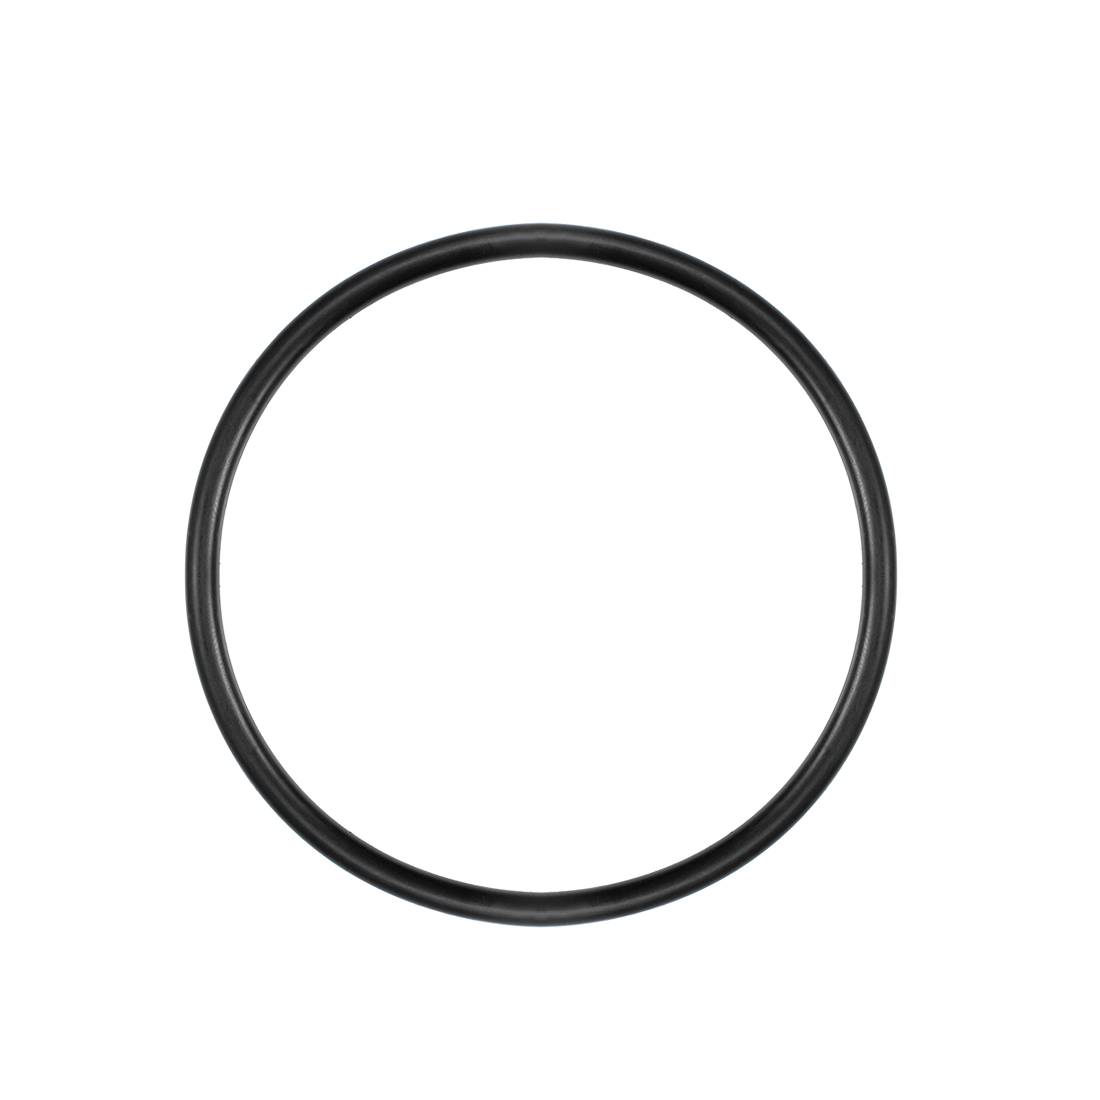 O-Rings Nitrile Rubber 21mm x 29mm x 4mm Round Seal Gasket 5Pcs